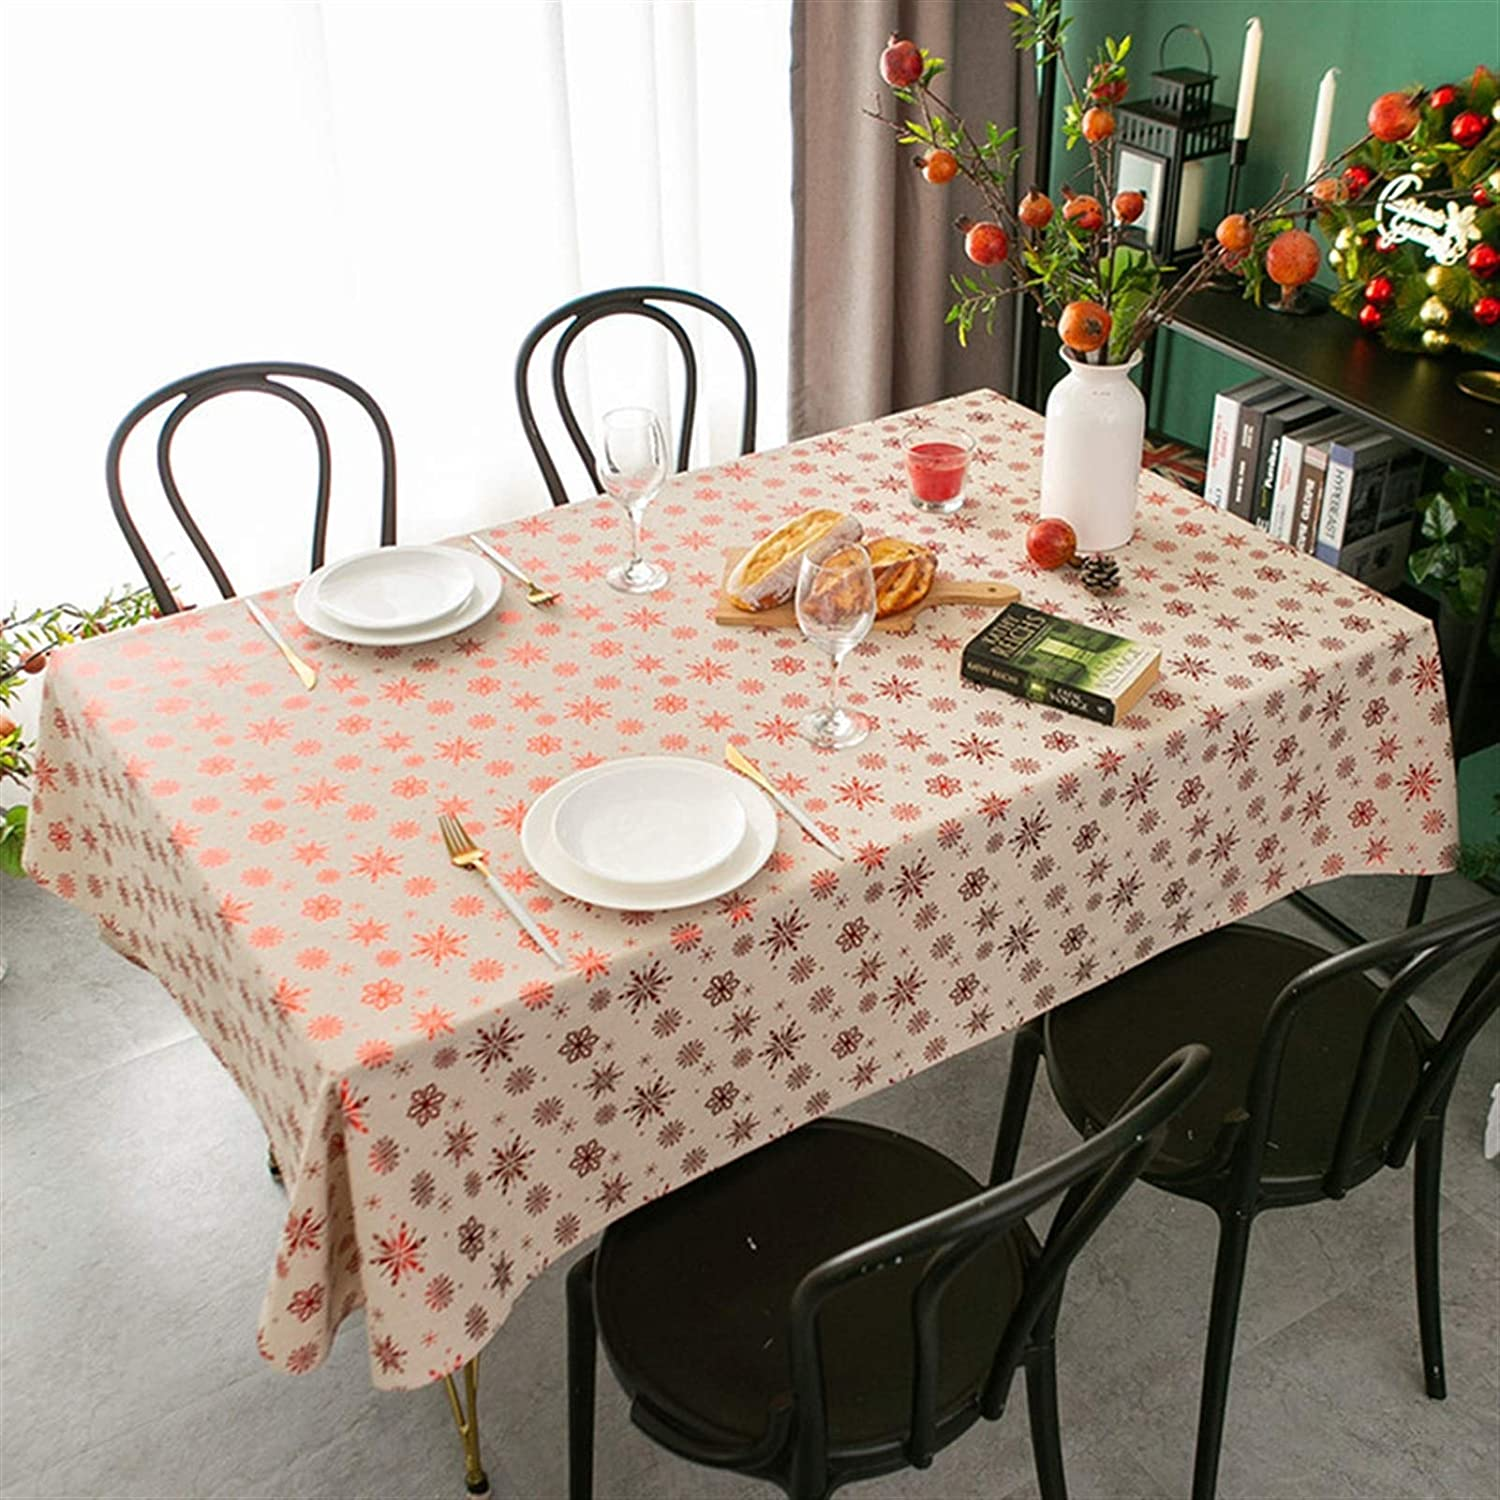 New Year Direct stock discount Christmas Table Cloth Street Year-end gift Snowflake Hot Cotton Linen